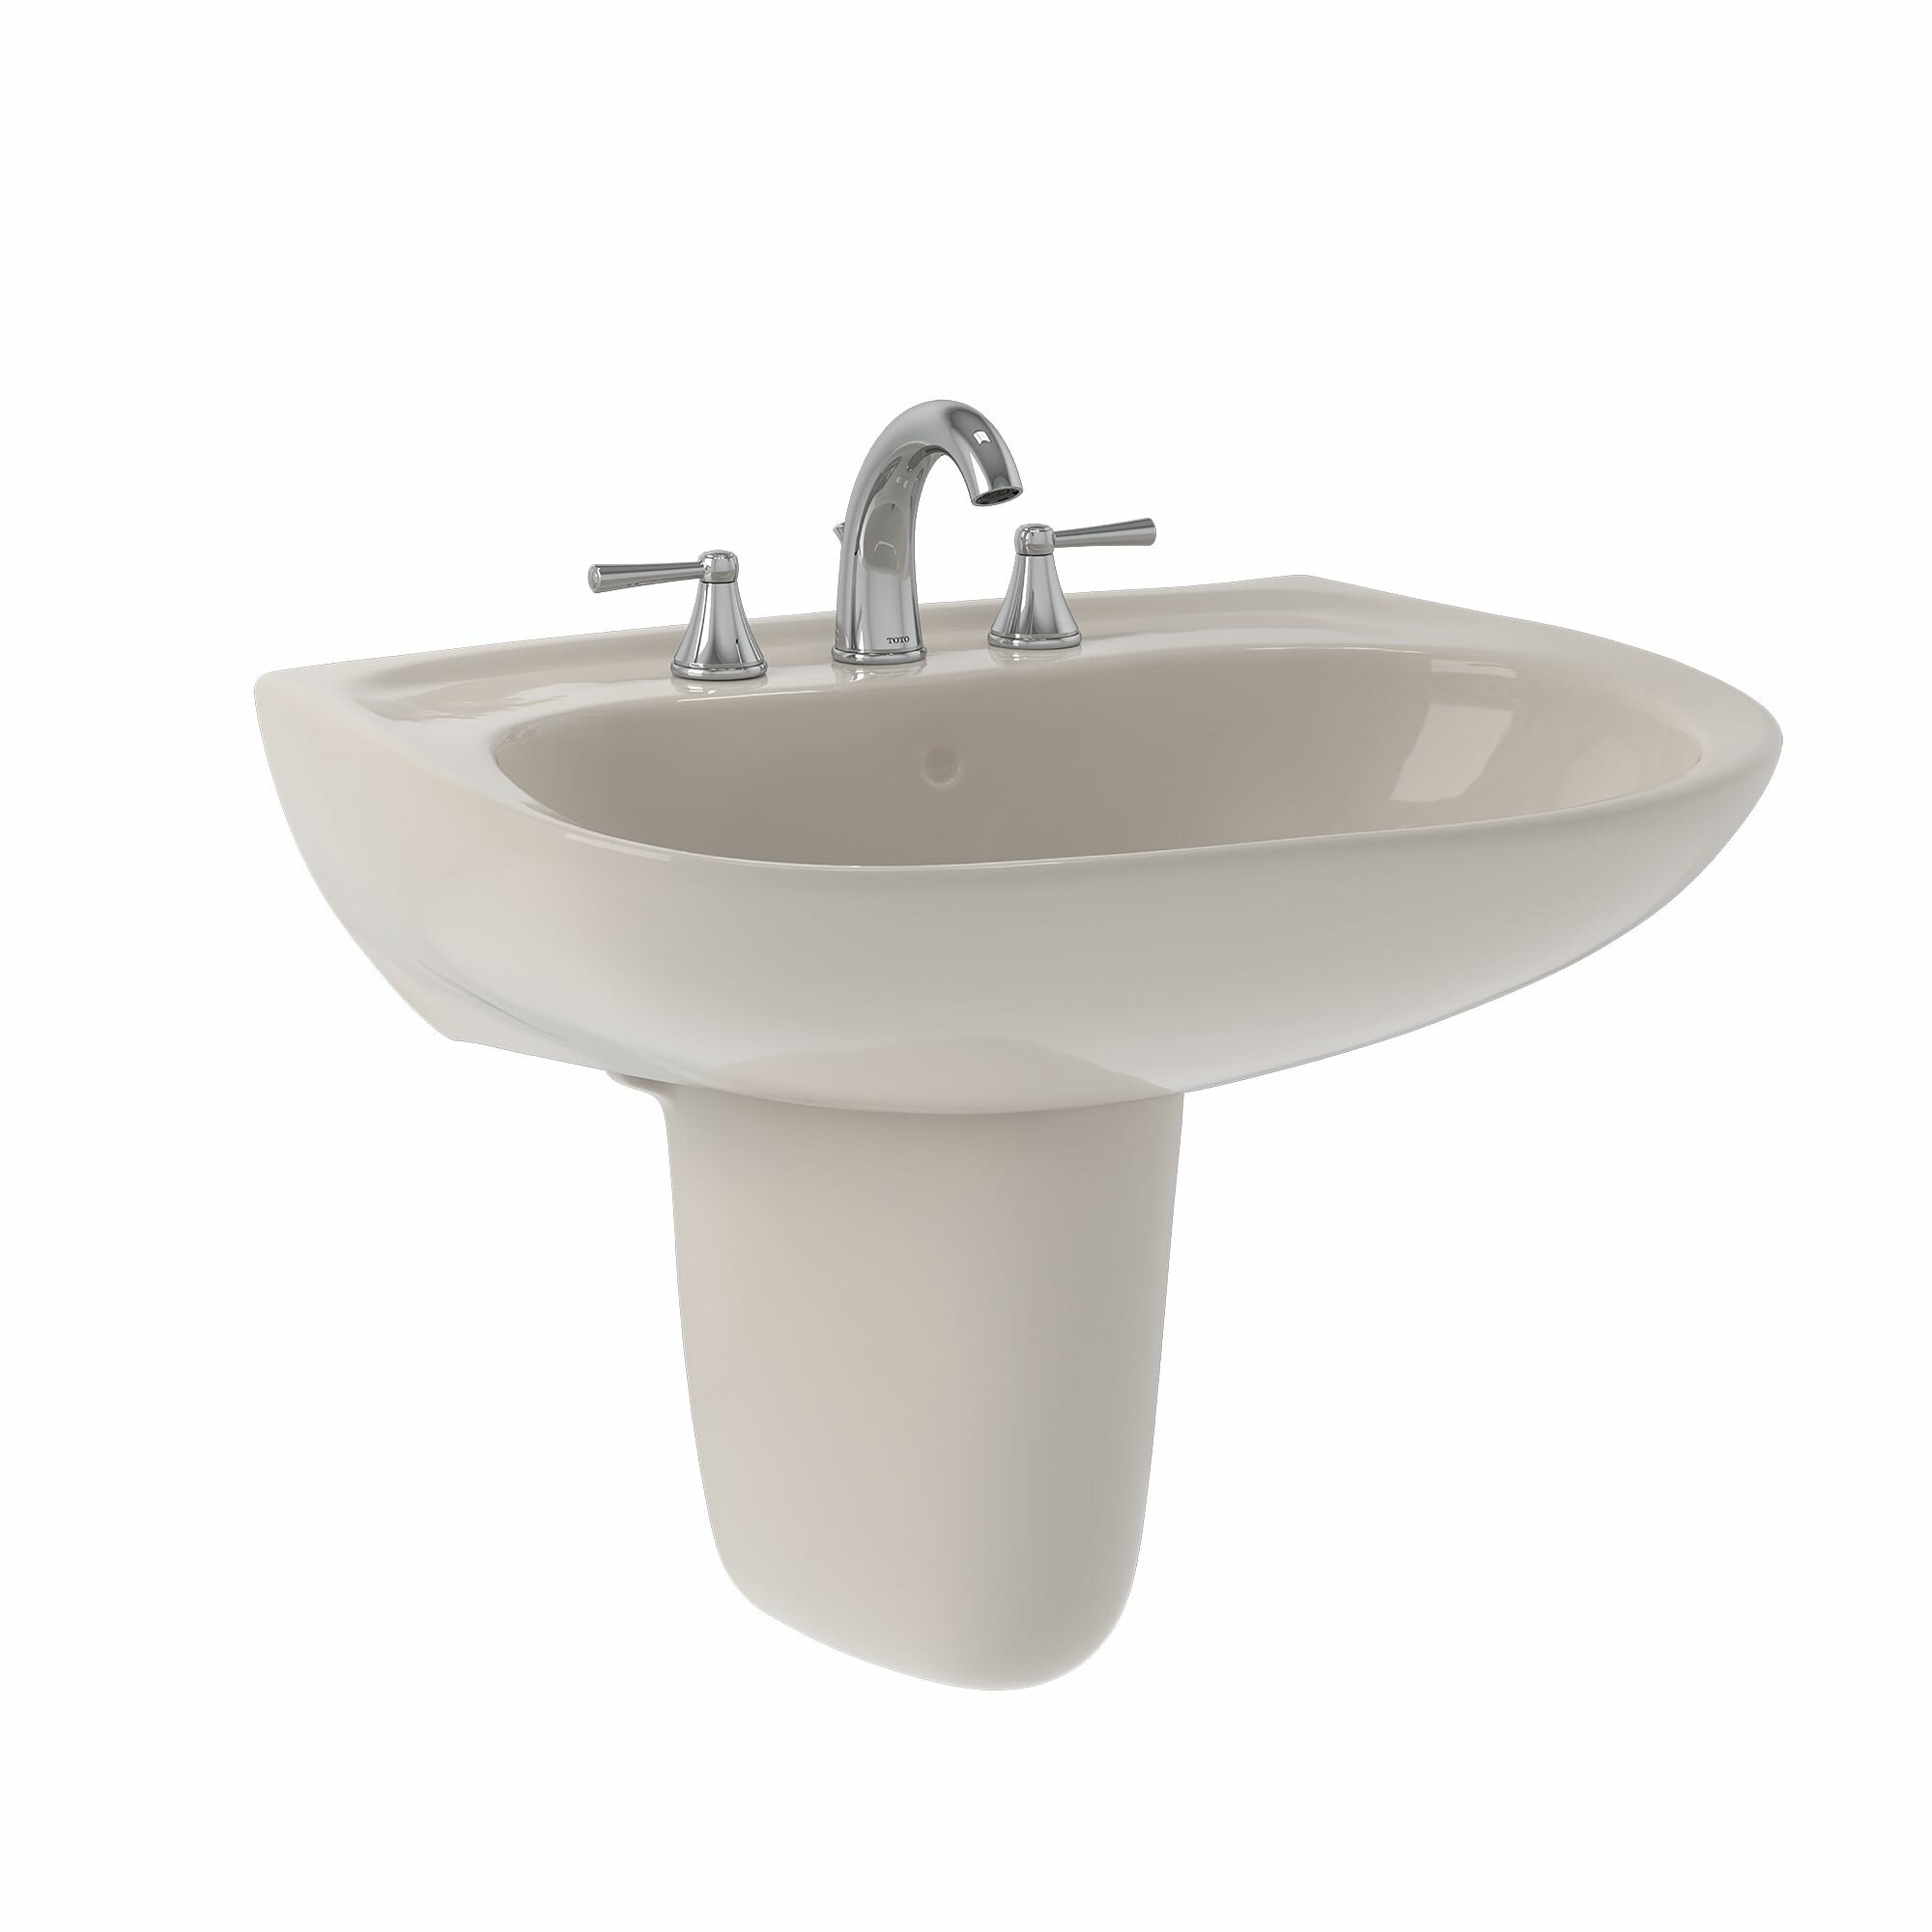 chairish bathroom sink toto sinks promenade traditional product pedestal